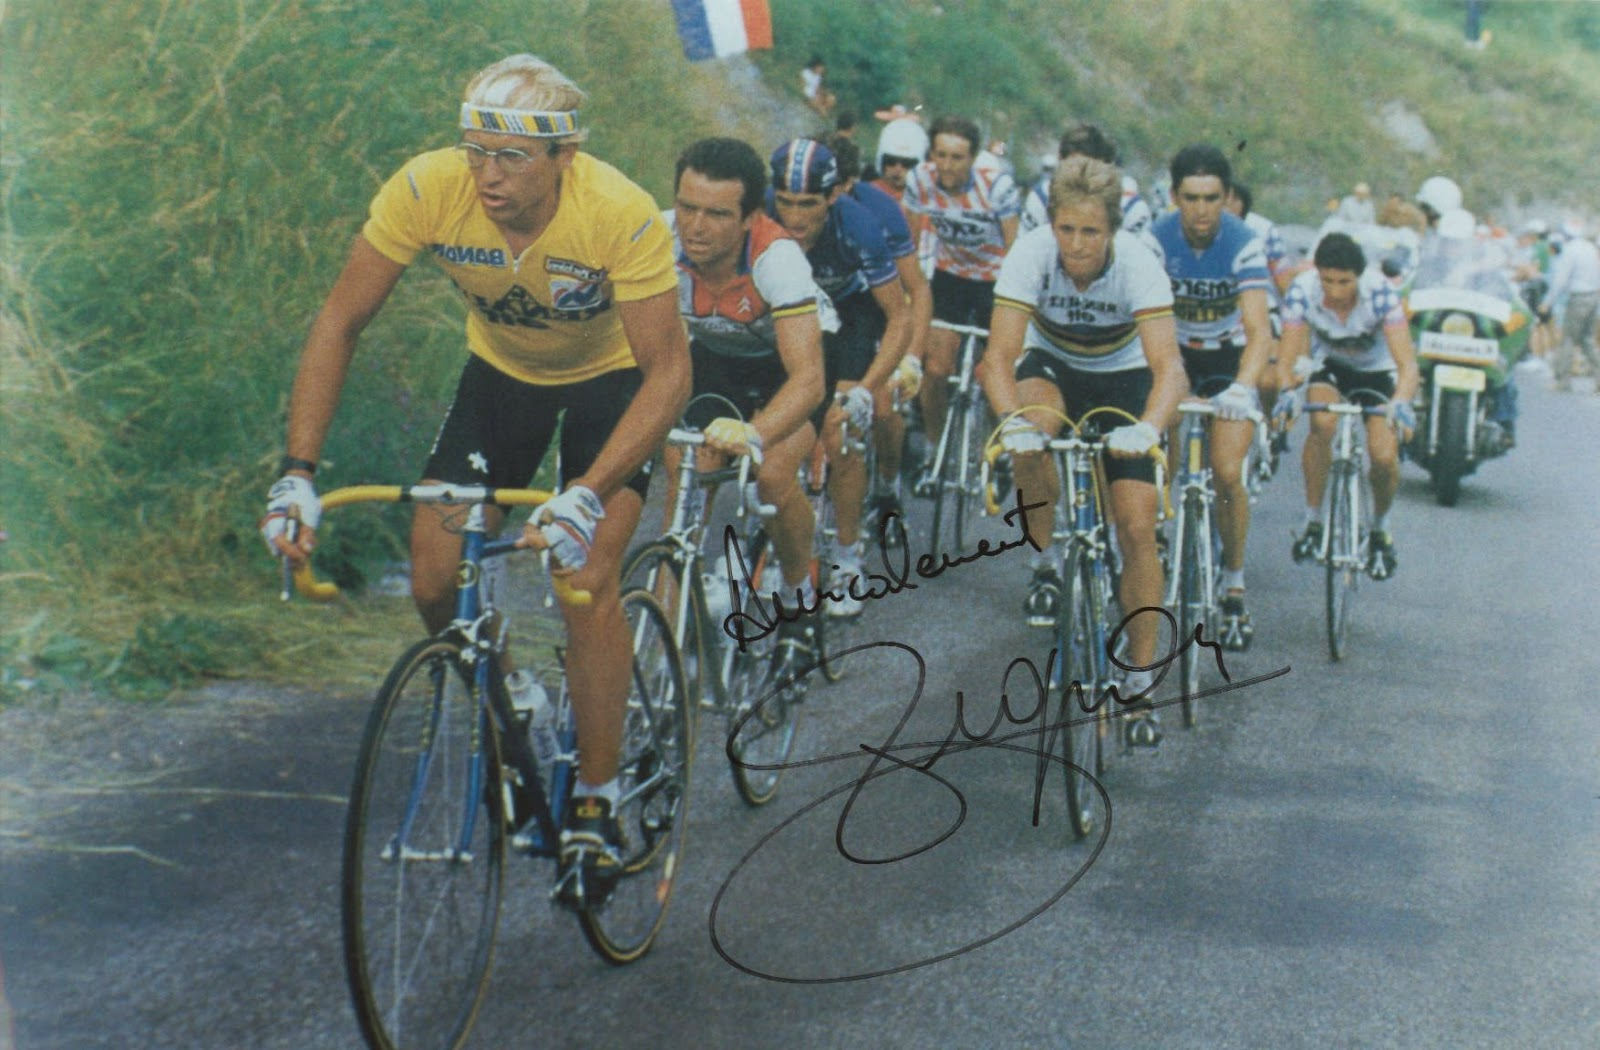 1984 Tour de France 80s heroes, instantly recognisable